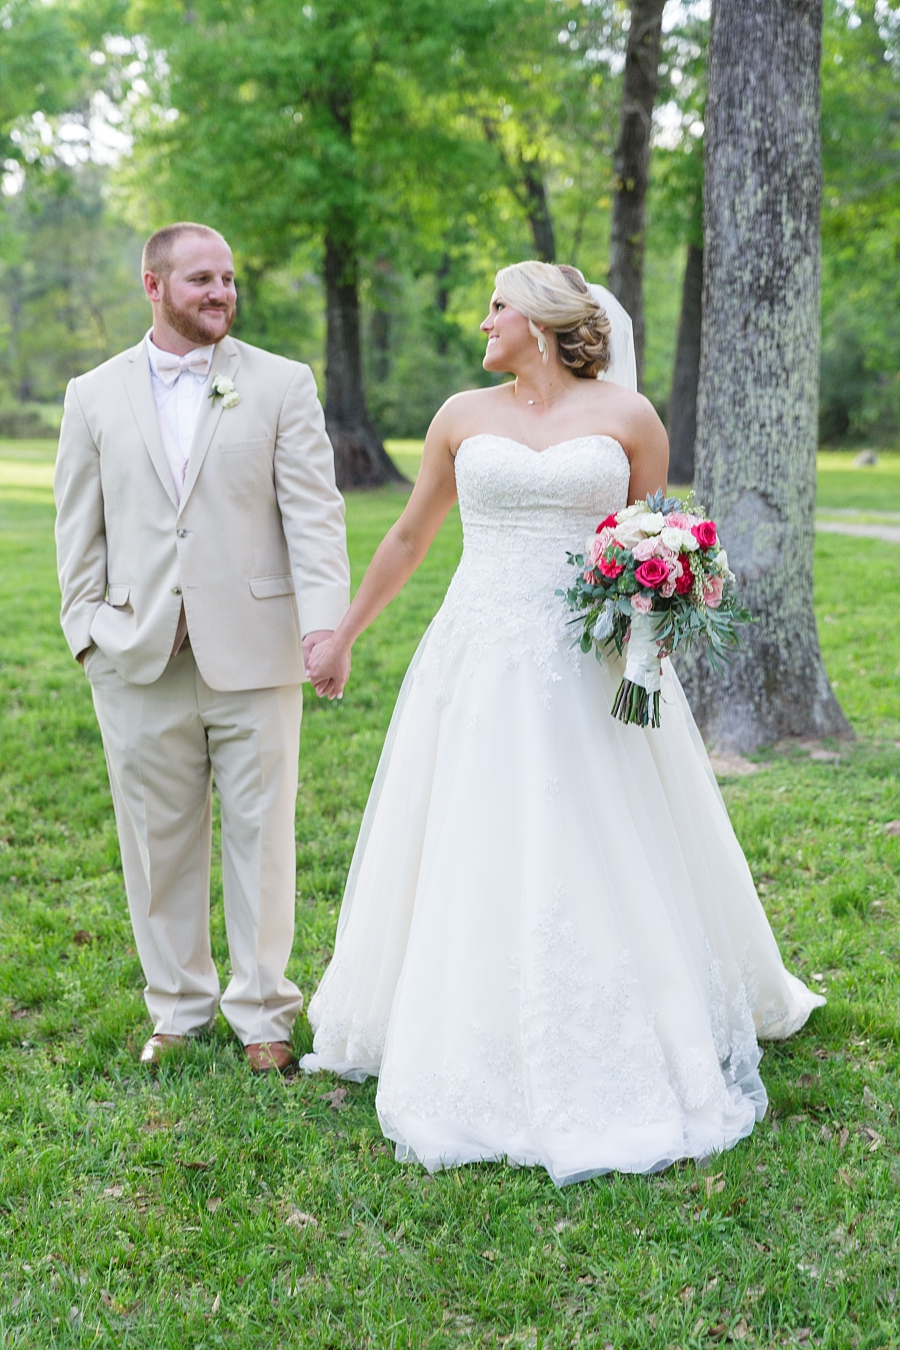 Stacy-Anderson-Photography-Balmorhea-Houston-Wedding-Photographer_0077.jpg